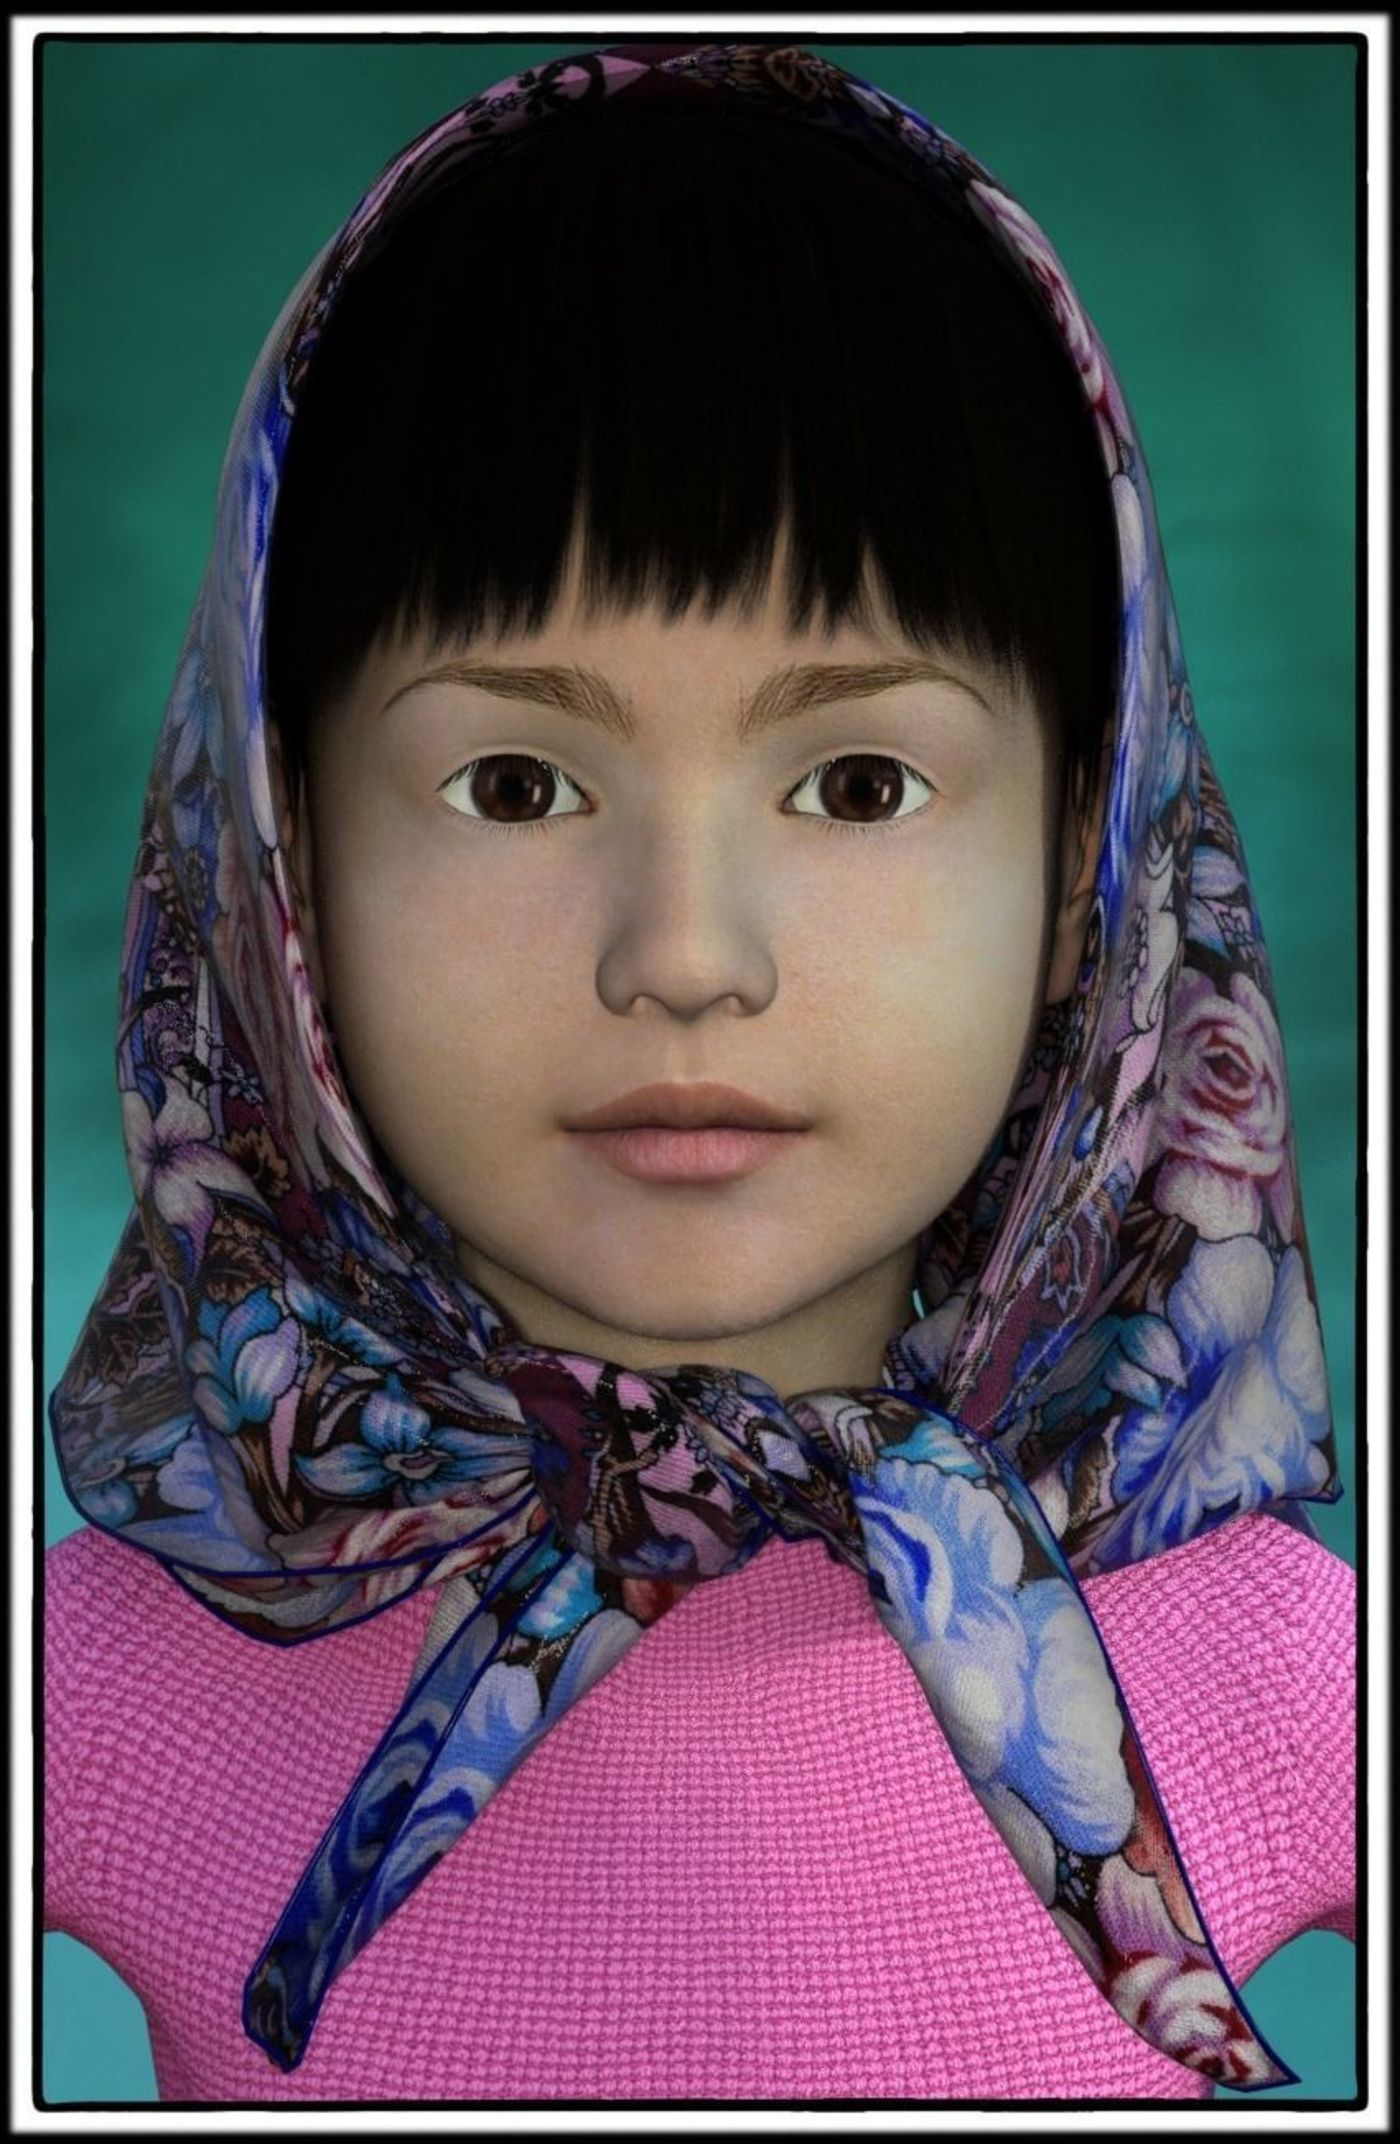 The little girl in the shawl